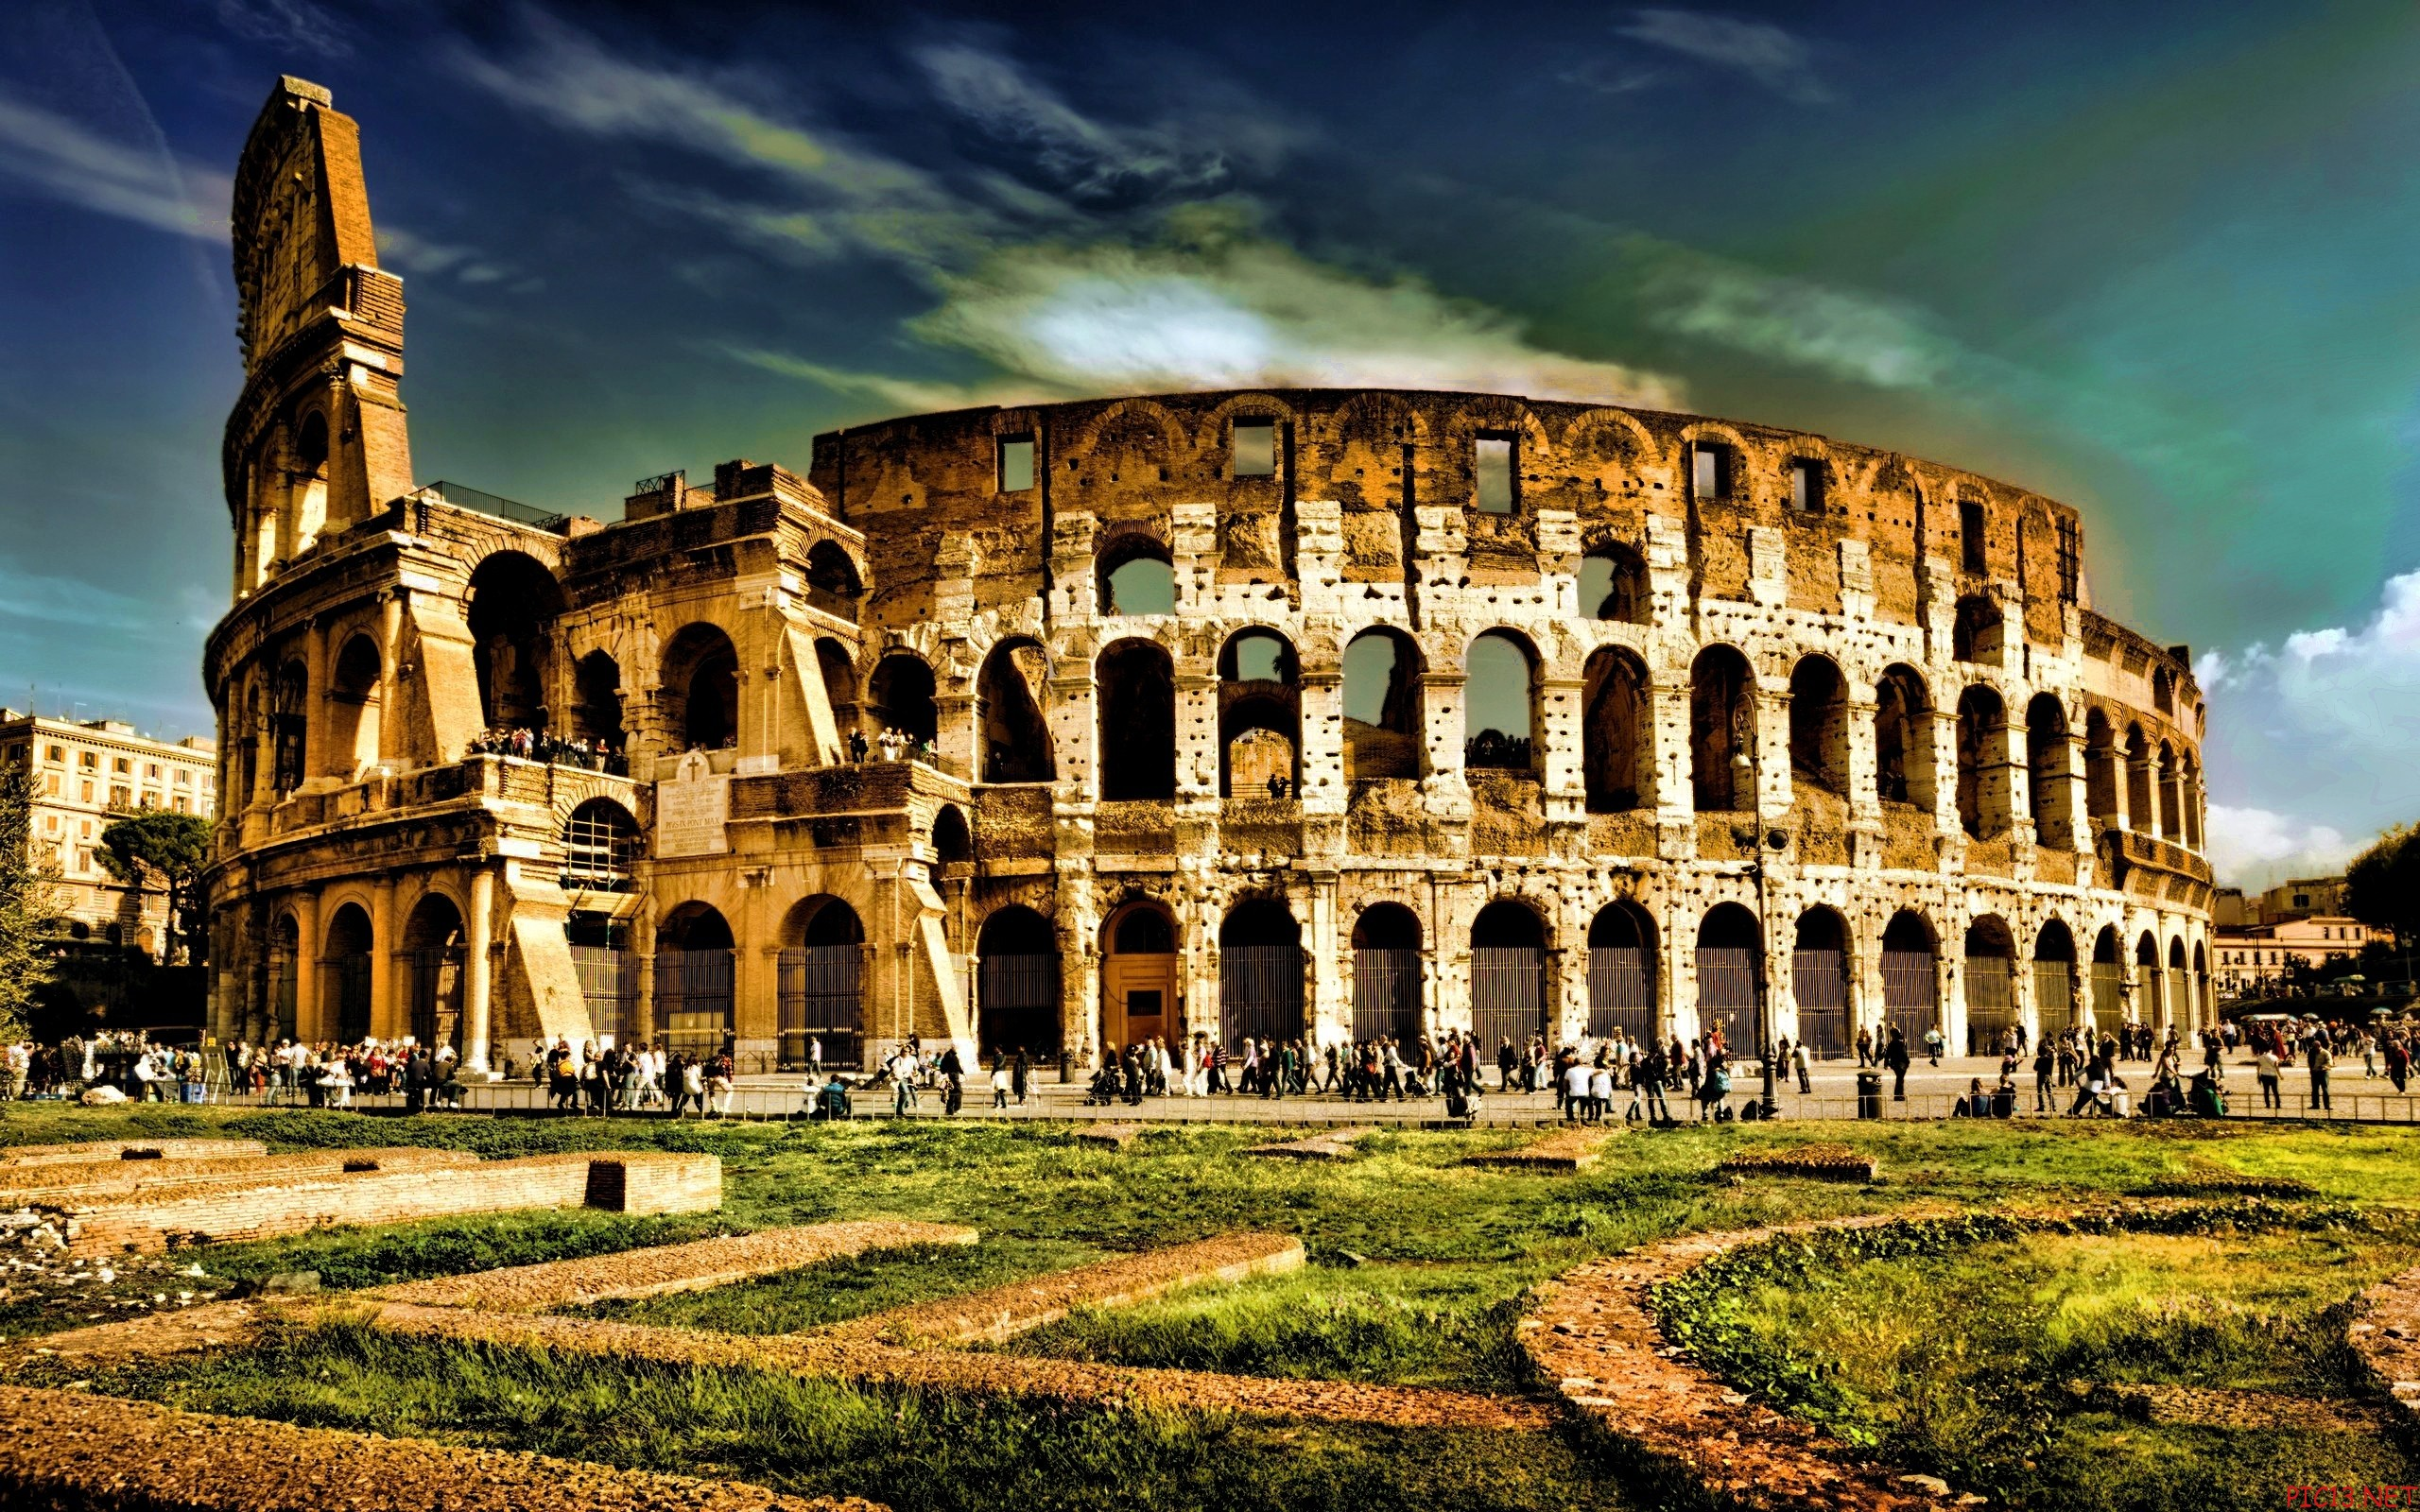 colosseum-rome-seven wonders of the world